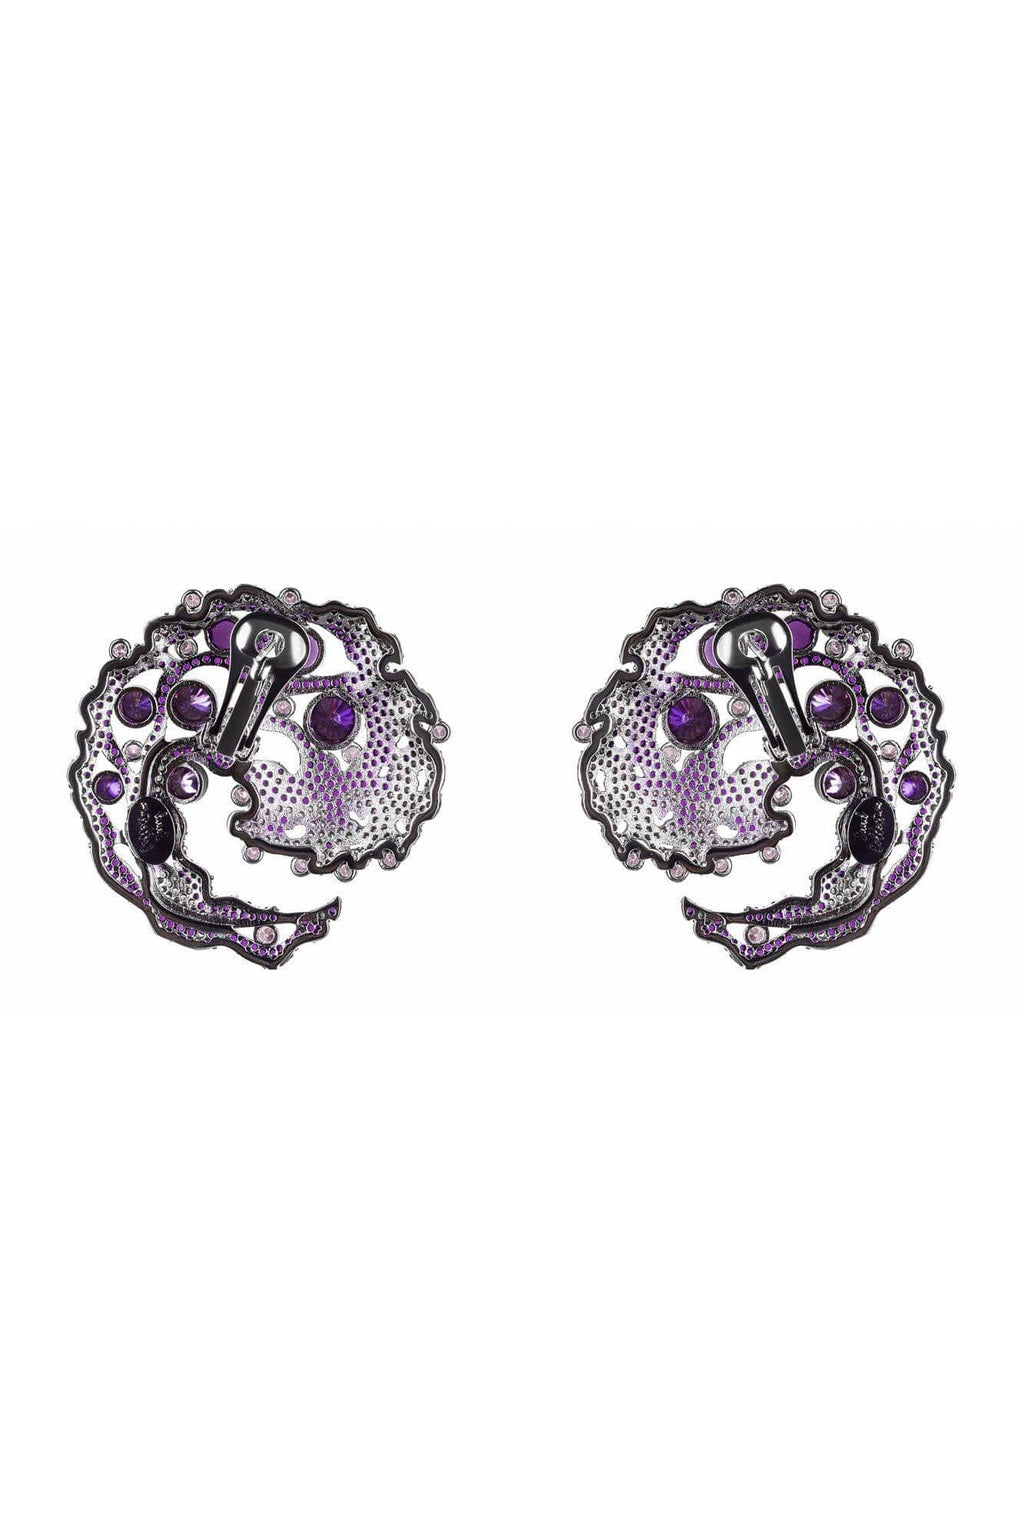 Caspia Amethyst Earrings - BYTRIBUTE